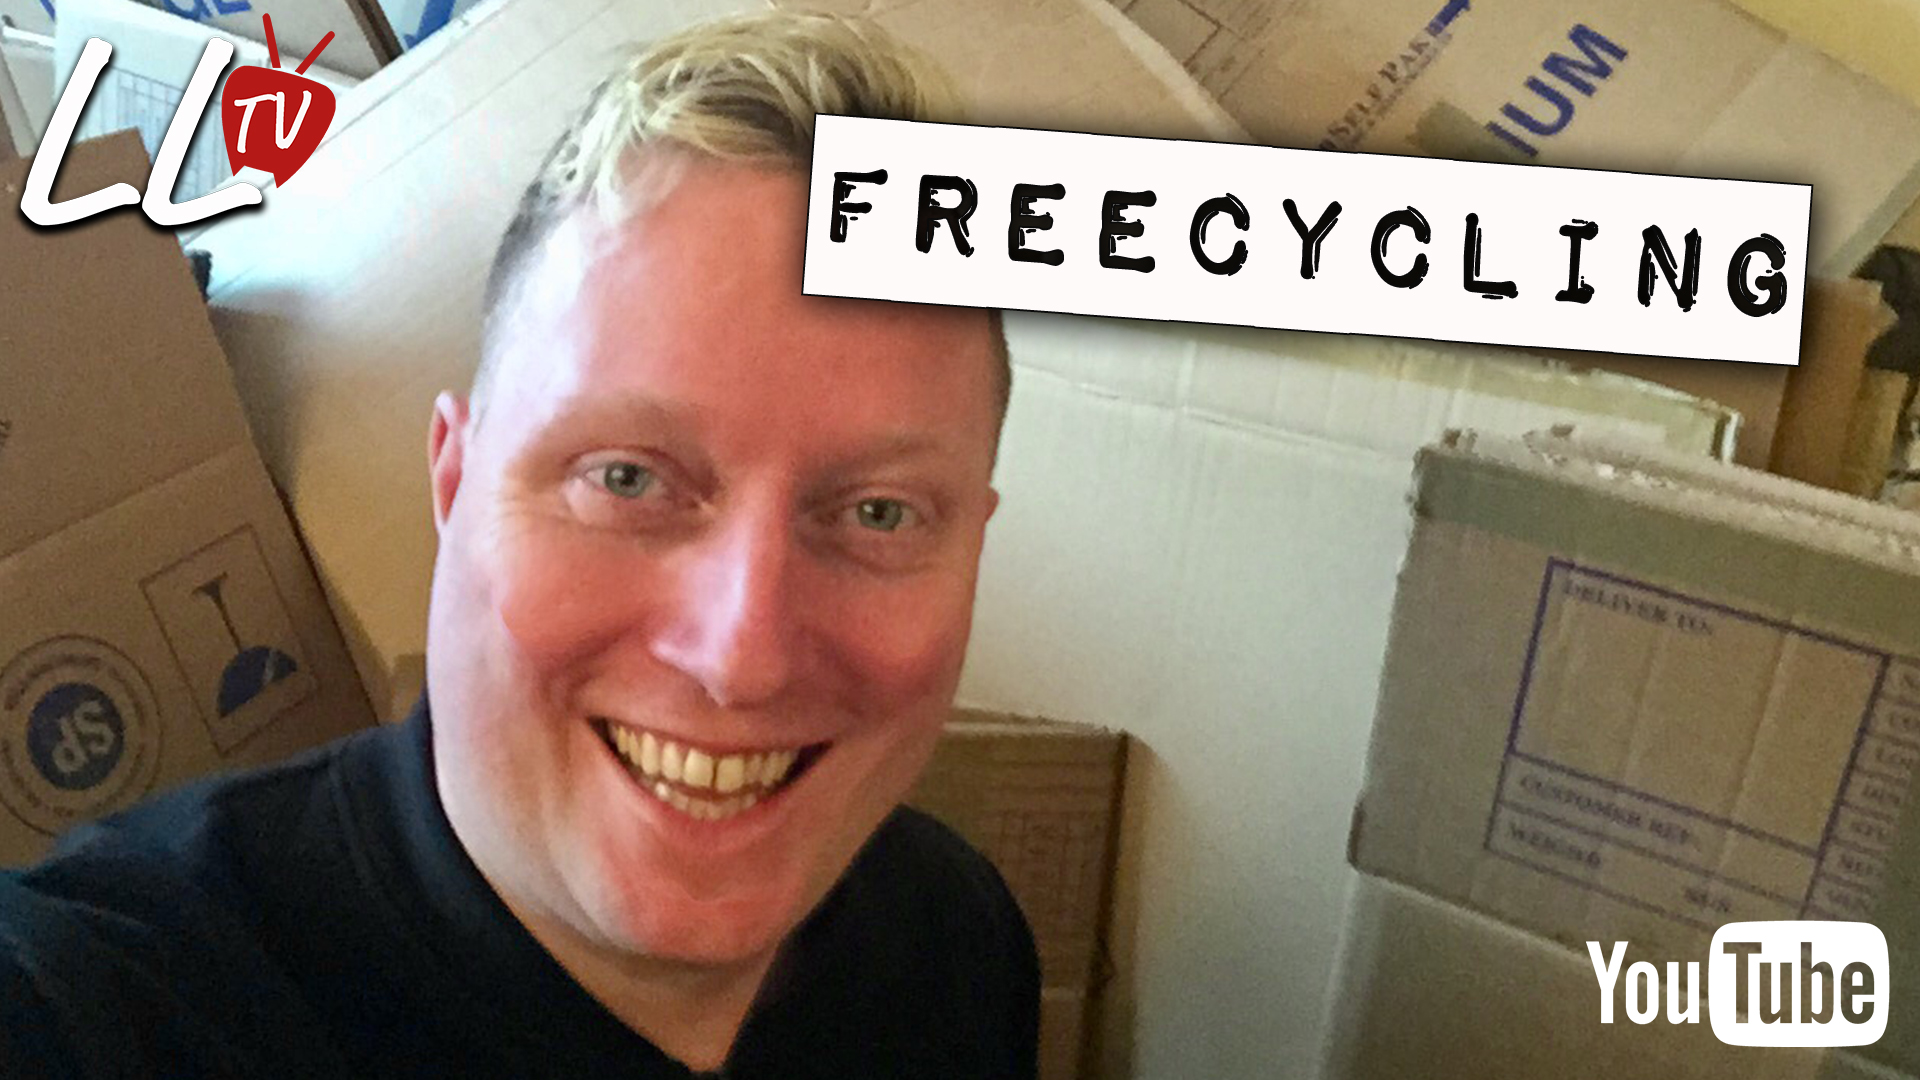 Freecycling